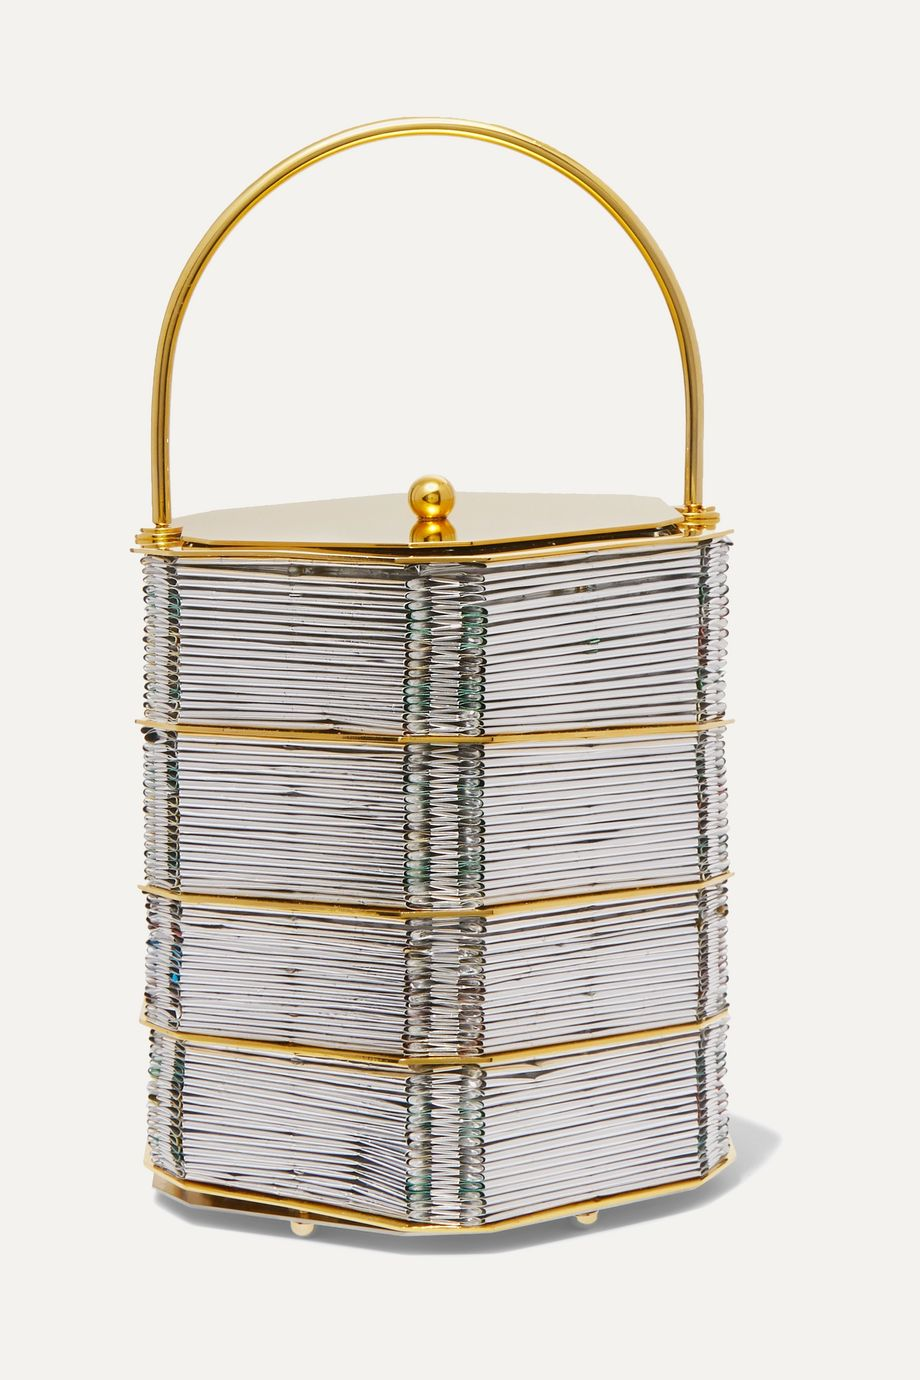 Vanina Le Puits D'Amour gold-plated and woven tote